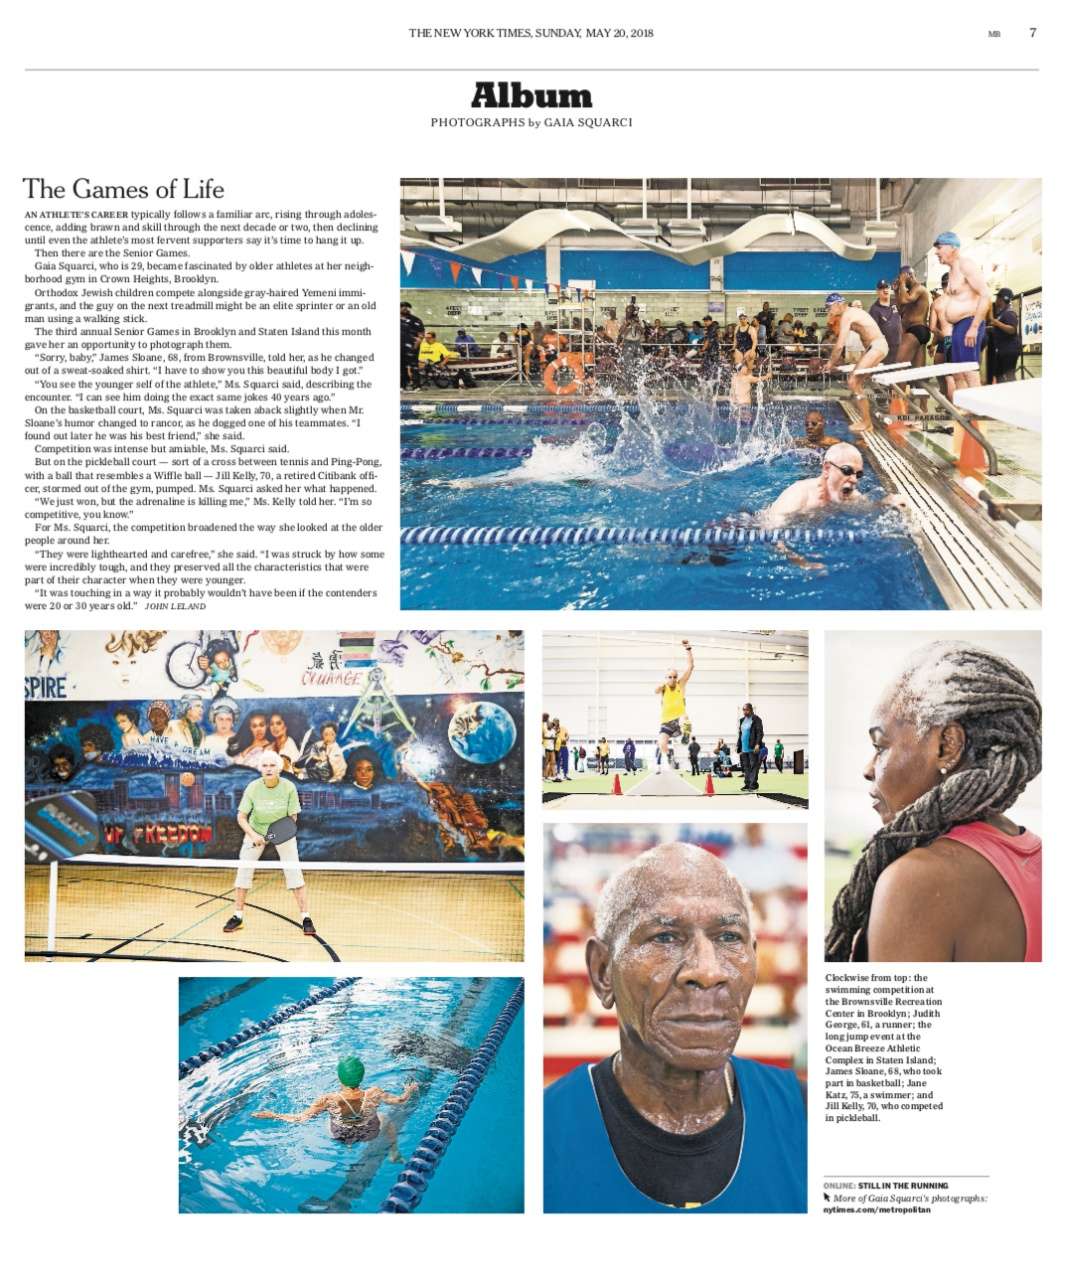 Senior Games, New York Times